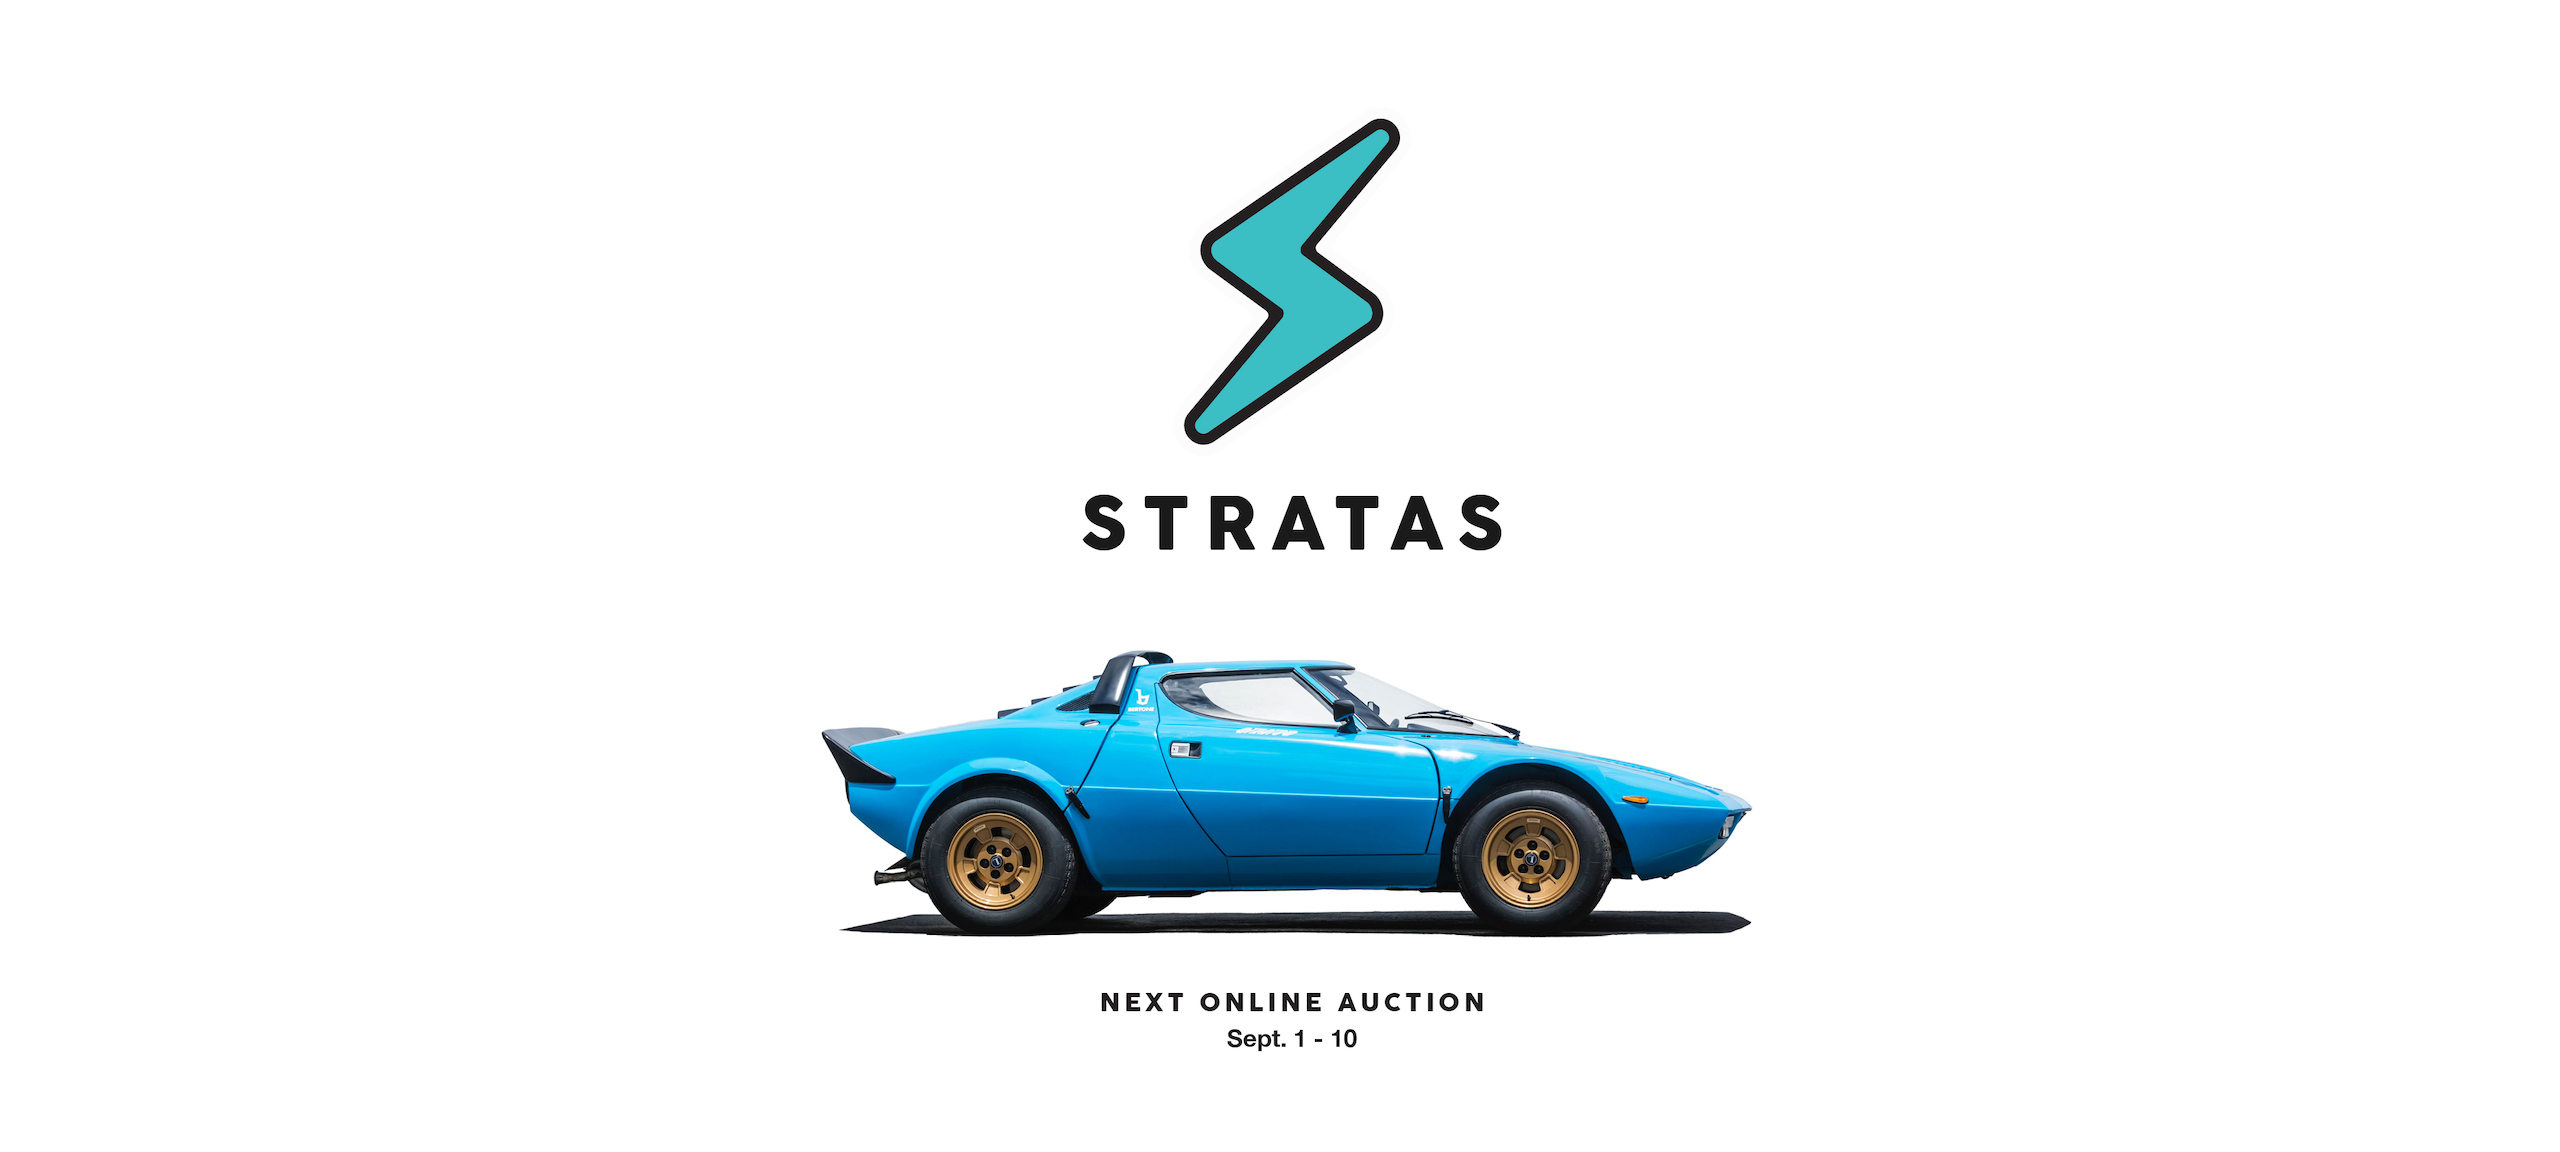 Lancia Stratos - Stratas Auctions Auctions Coming Soon Banner